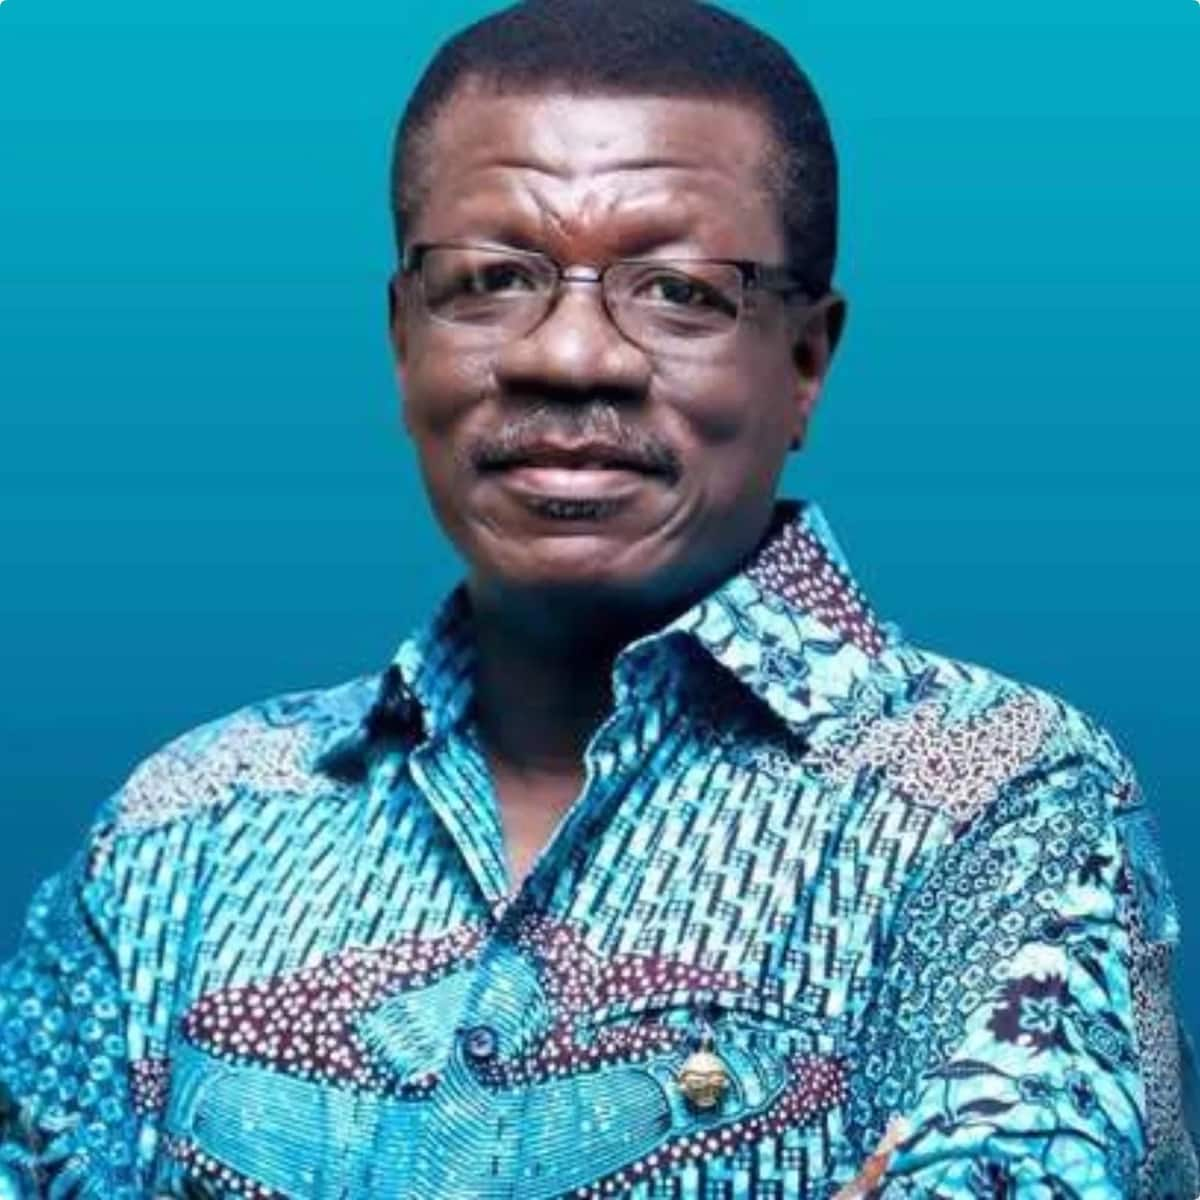 5 of the most outrageous claims Ghanaian pastors have made